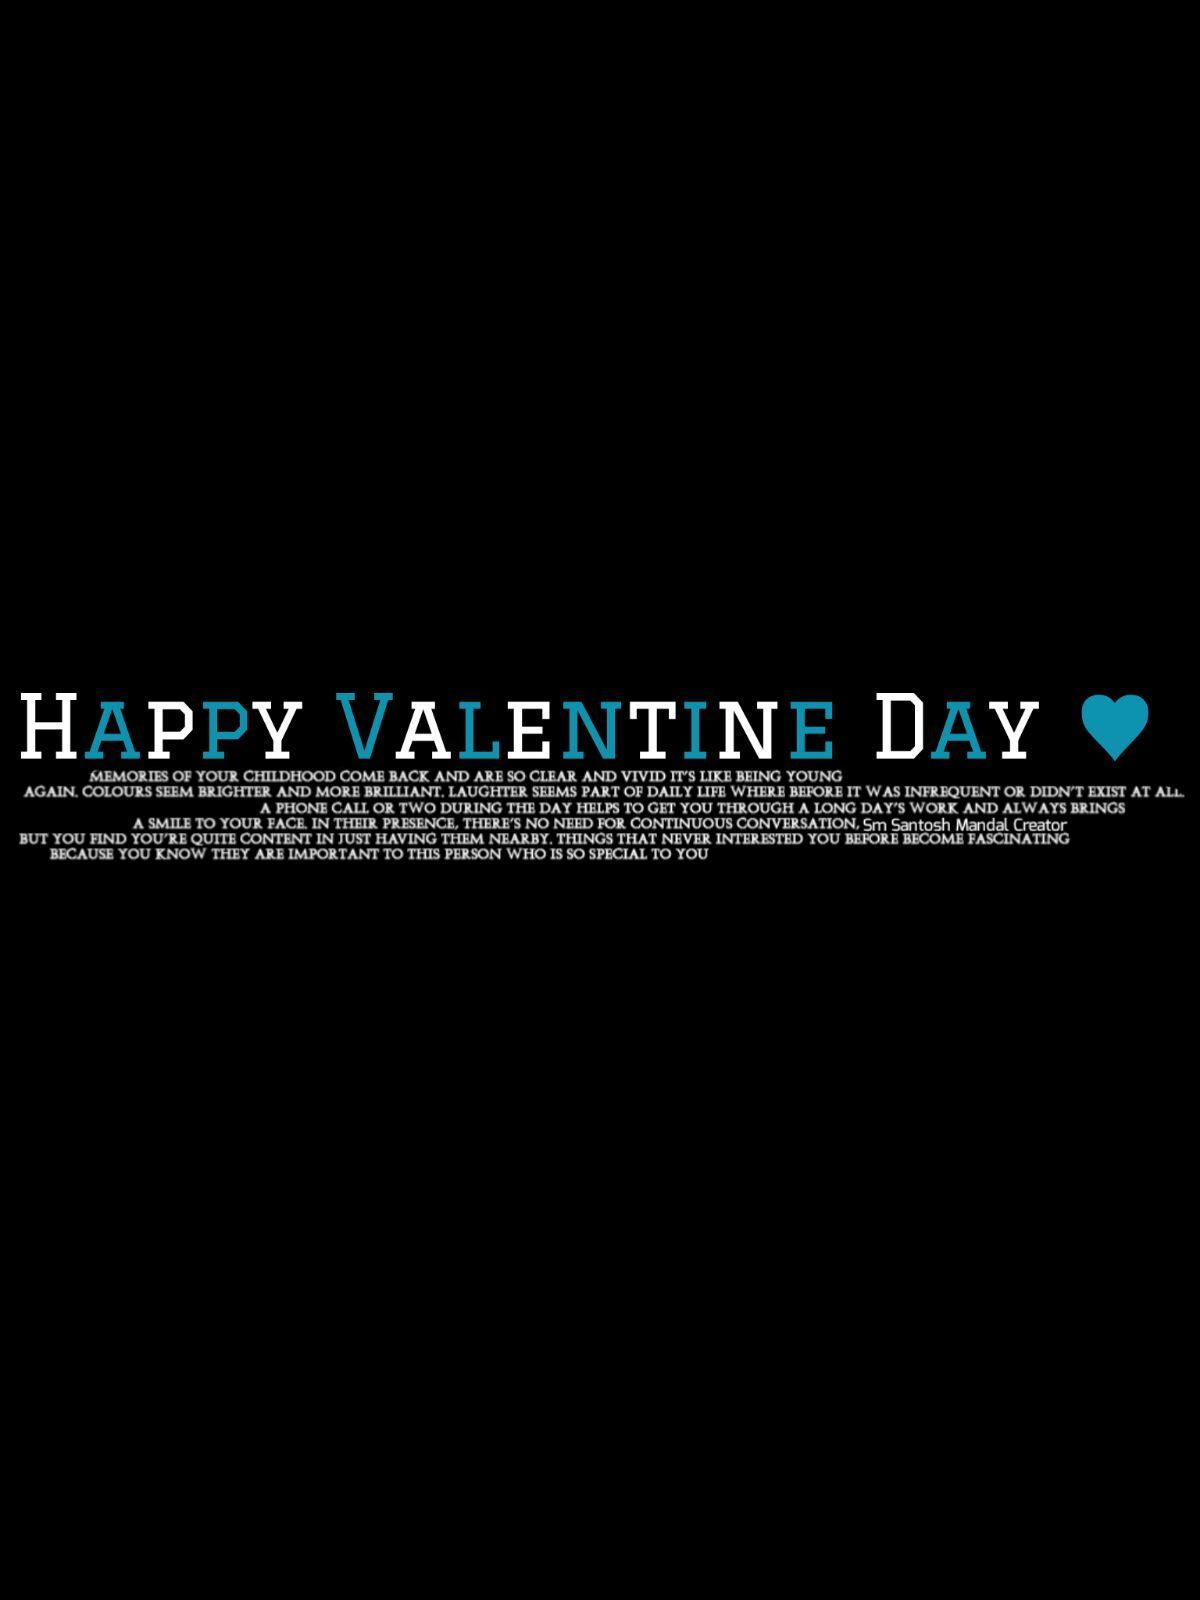 Text Png For Picsart Editing Png Text Valentine Text Png